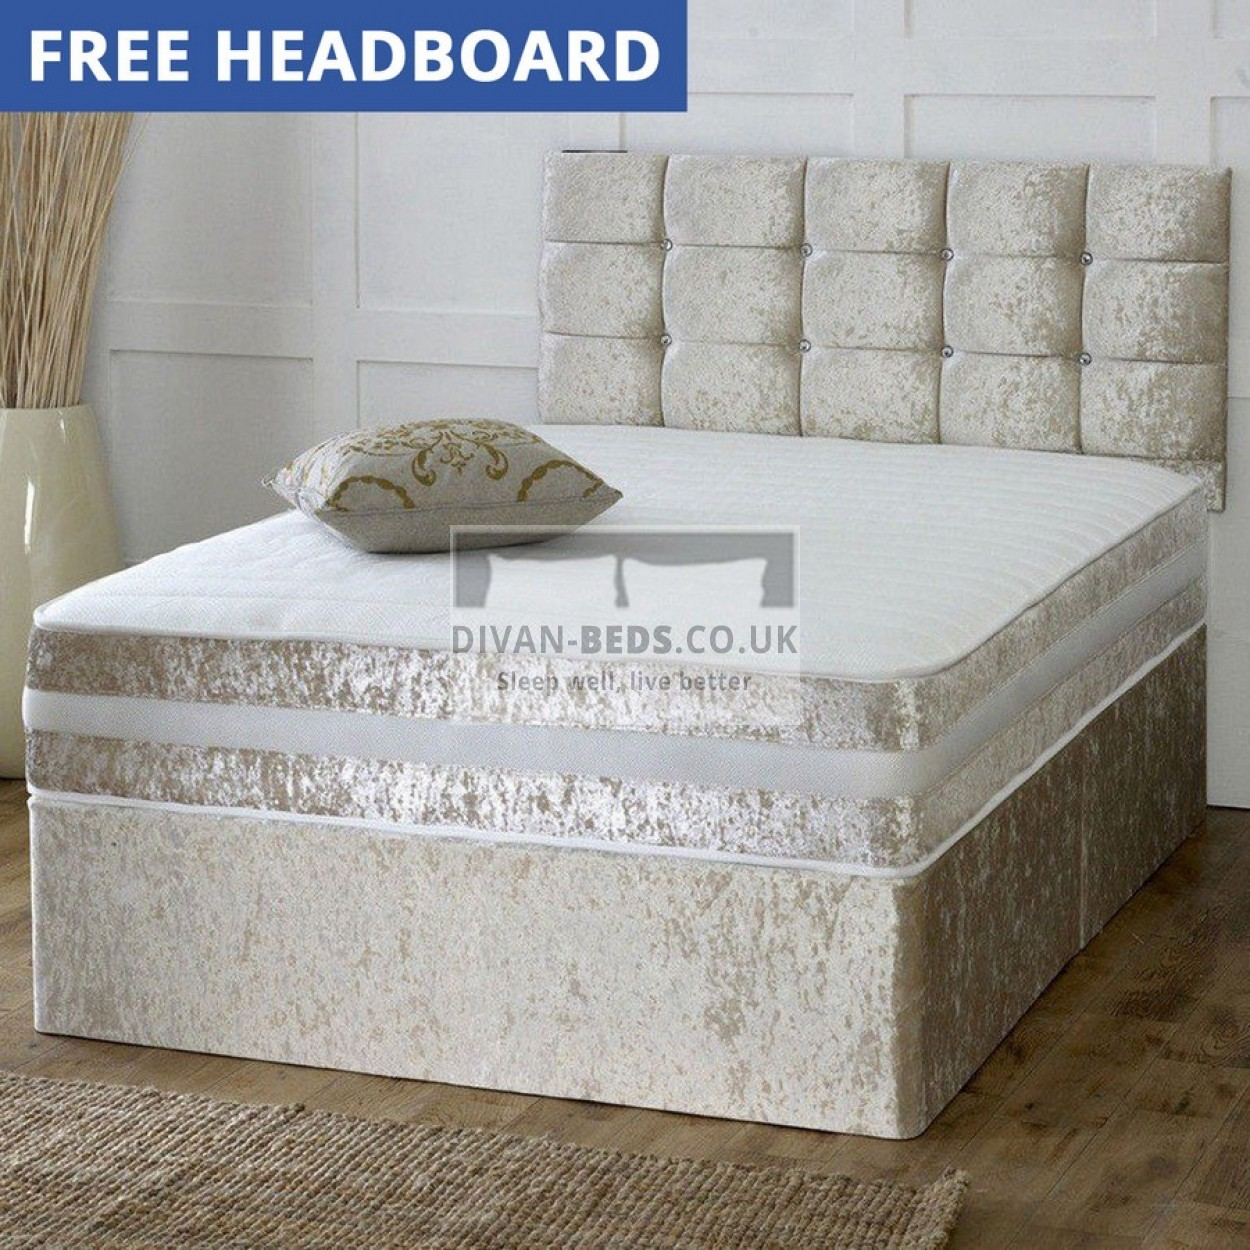 Patrick Crushed Velvet Divan Bed With 1500 Pocket Spring